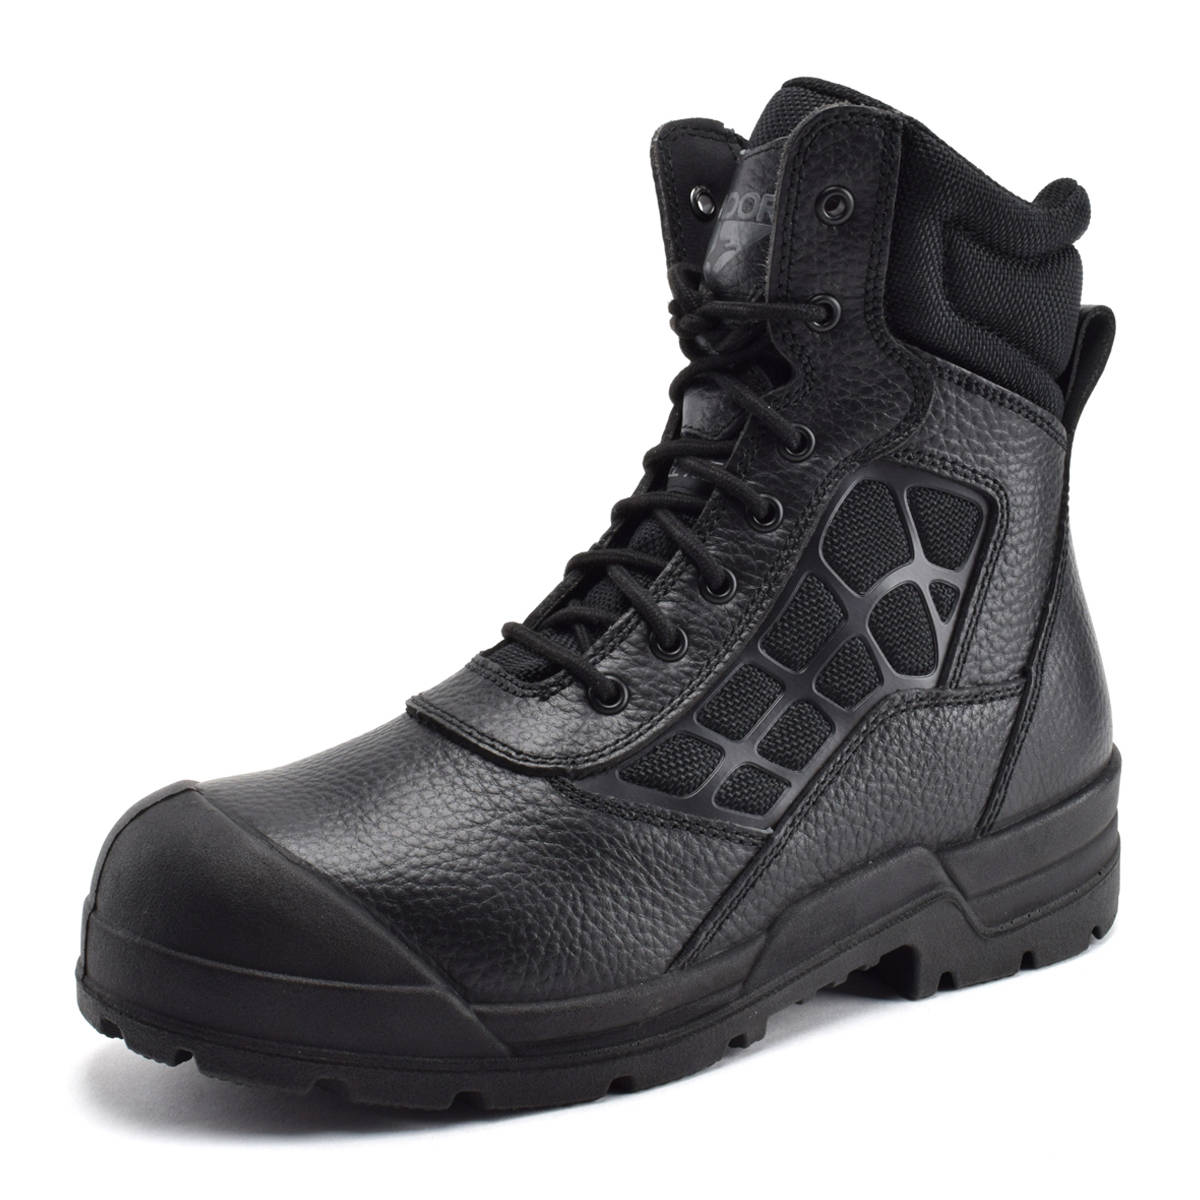 Condor Men's 8 Inch Steel Toe Work Boot Black High-Top Leather - 7M